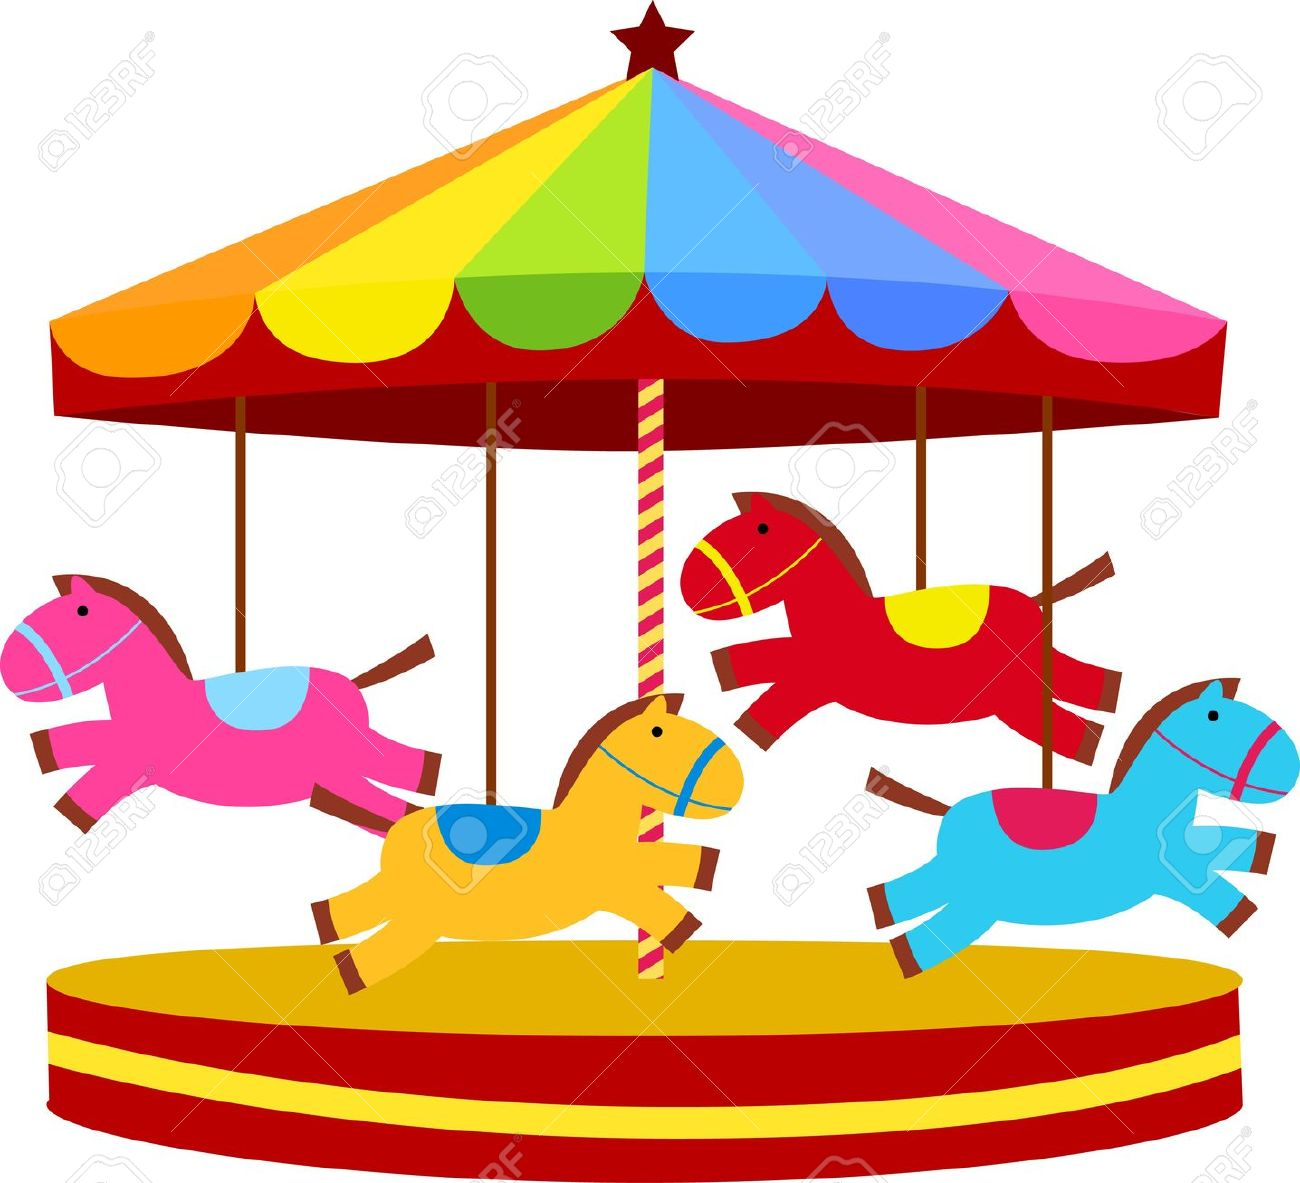 Ride clipart carousel Illustrations Cliparts Group 5 830